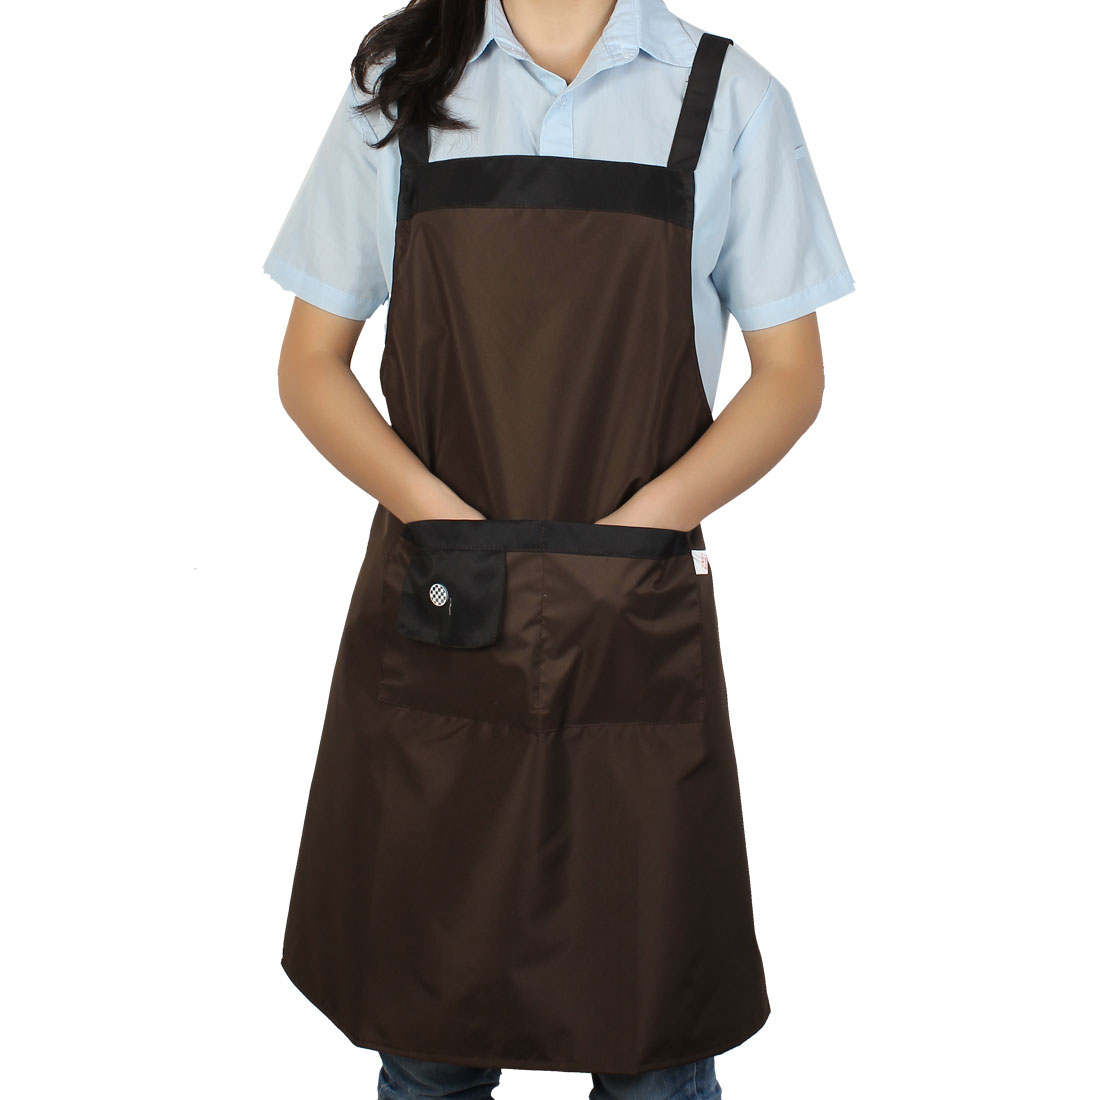 Home Cook Cooking Self Tie Button Accent 2 Pocket Bib Apron Dress Gray